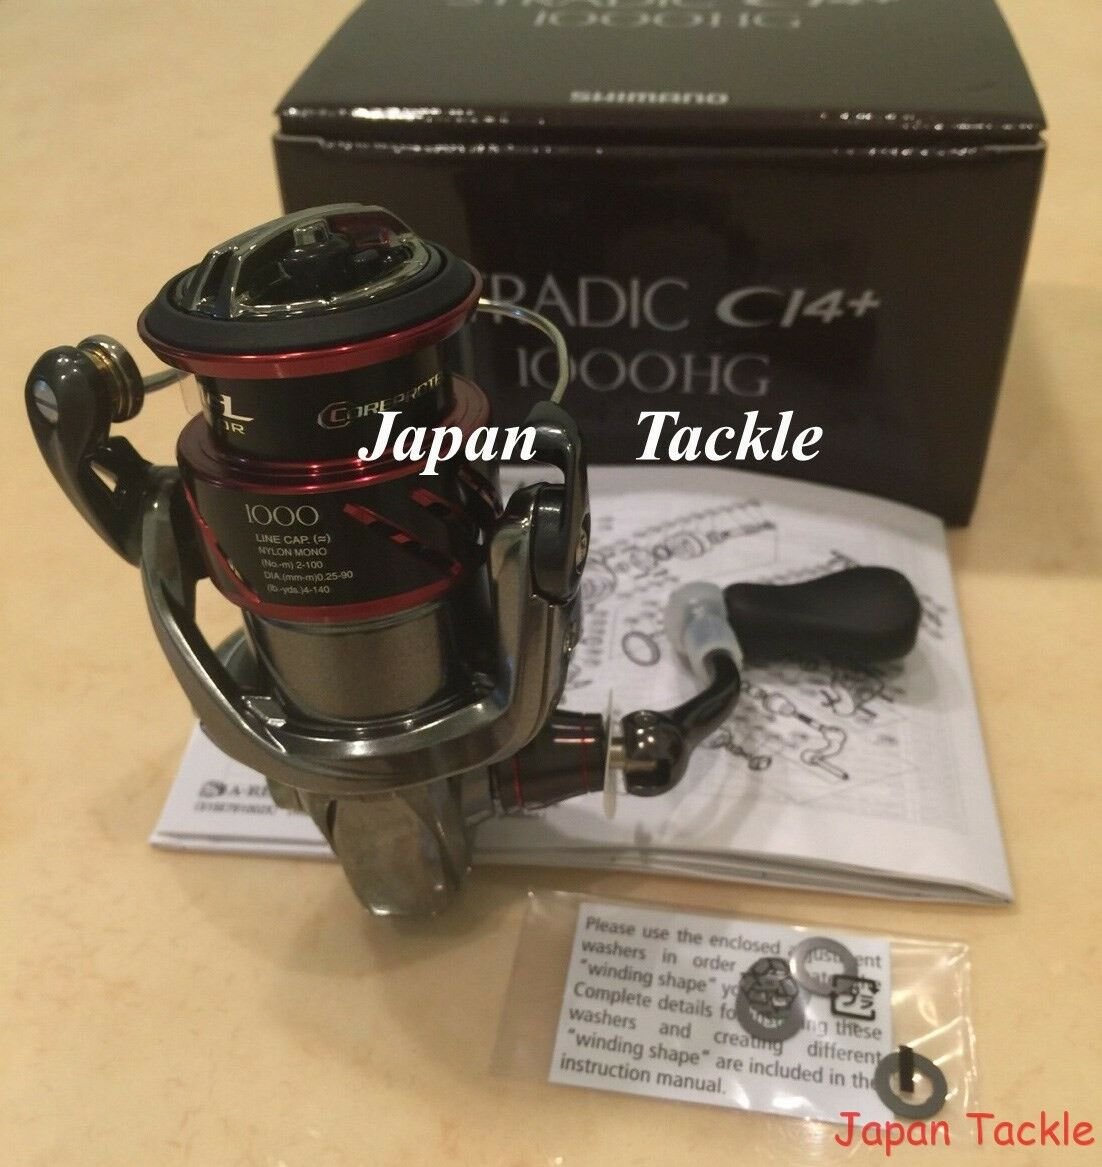 NEW SHIMANO STRADIC CI4+ 1000HG FB SPINING REEL FREE USPS 1-3 DAYS DELIVERY